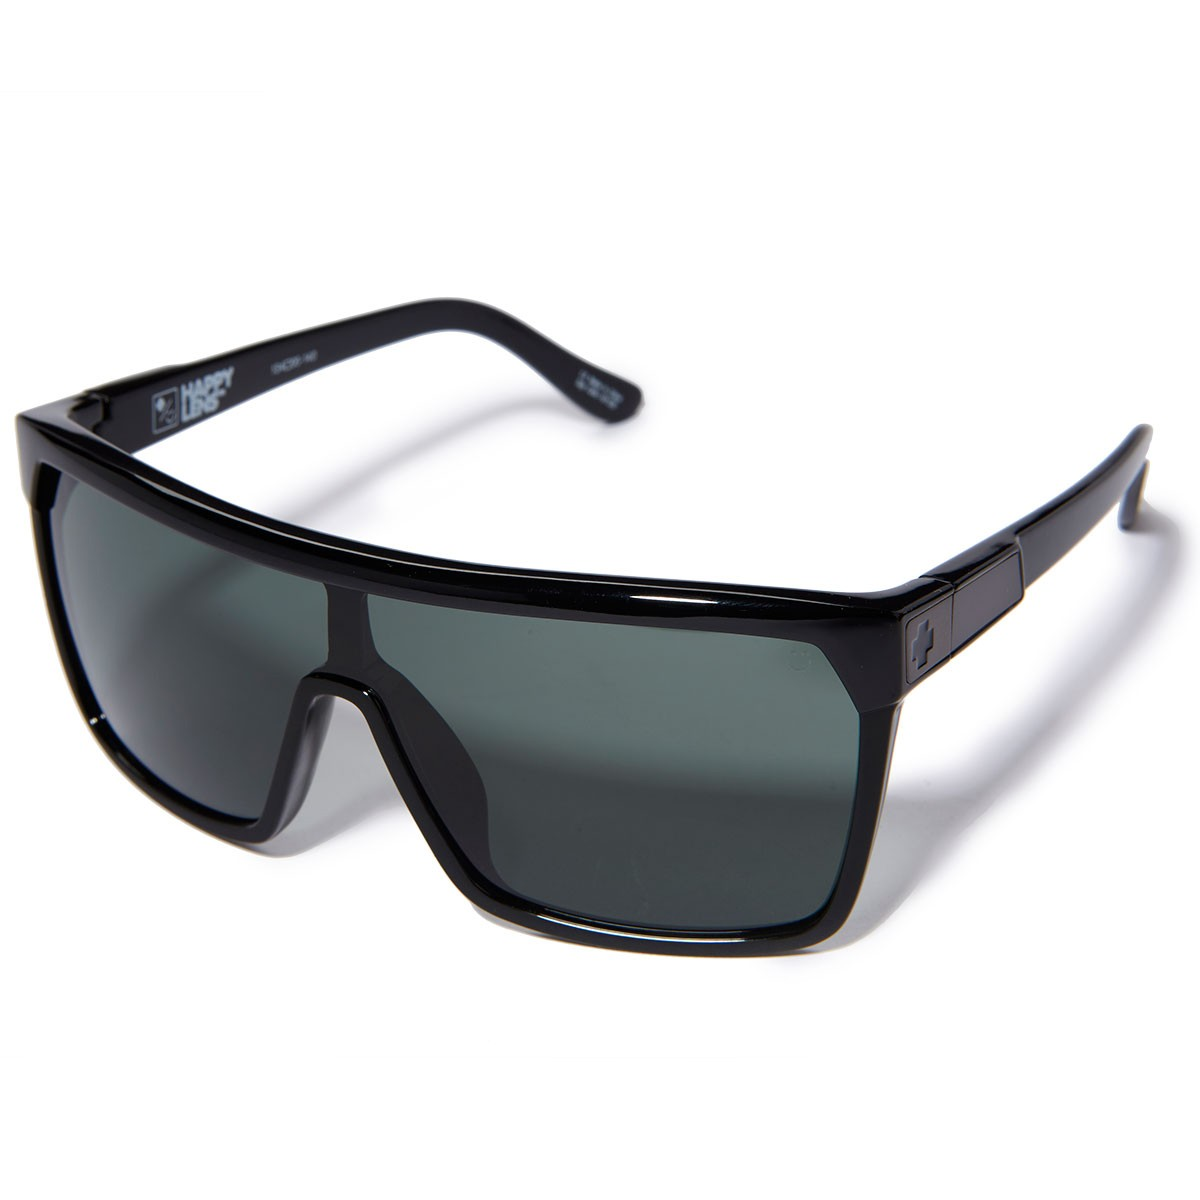 Spy Sunglasses Flynn  flynn sunglasses soft matte black tort fade happy gray green